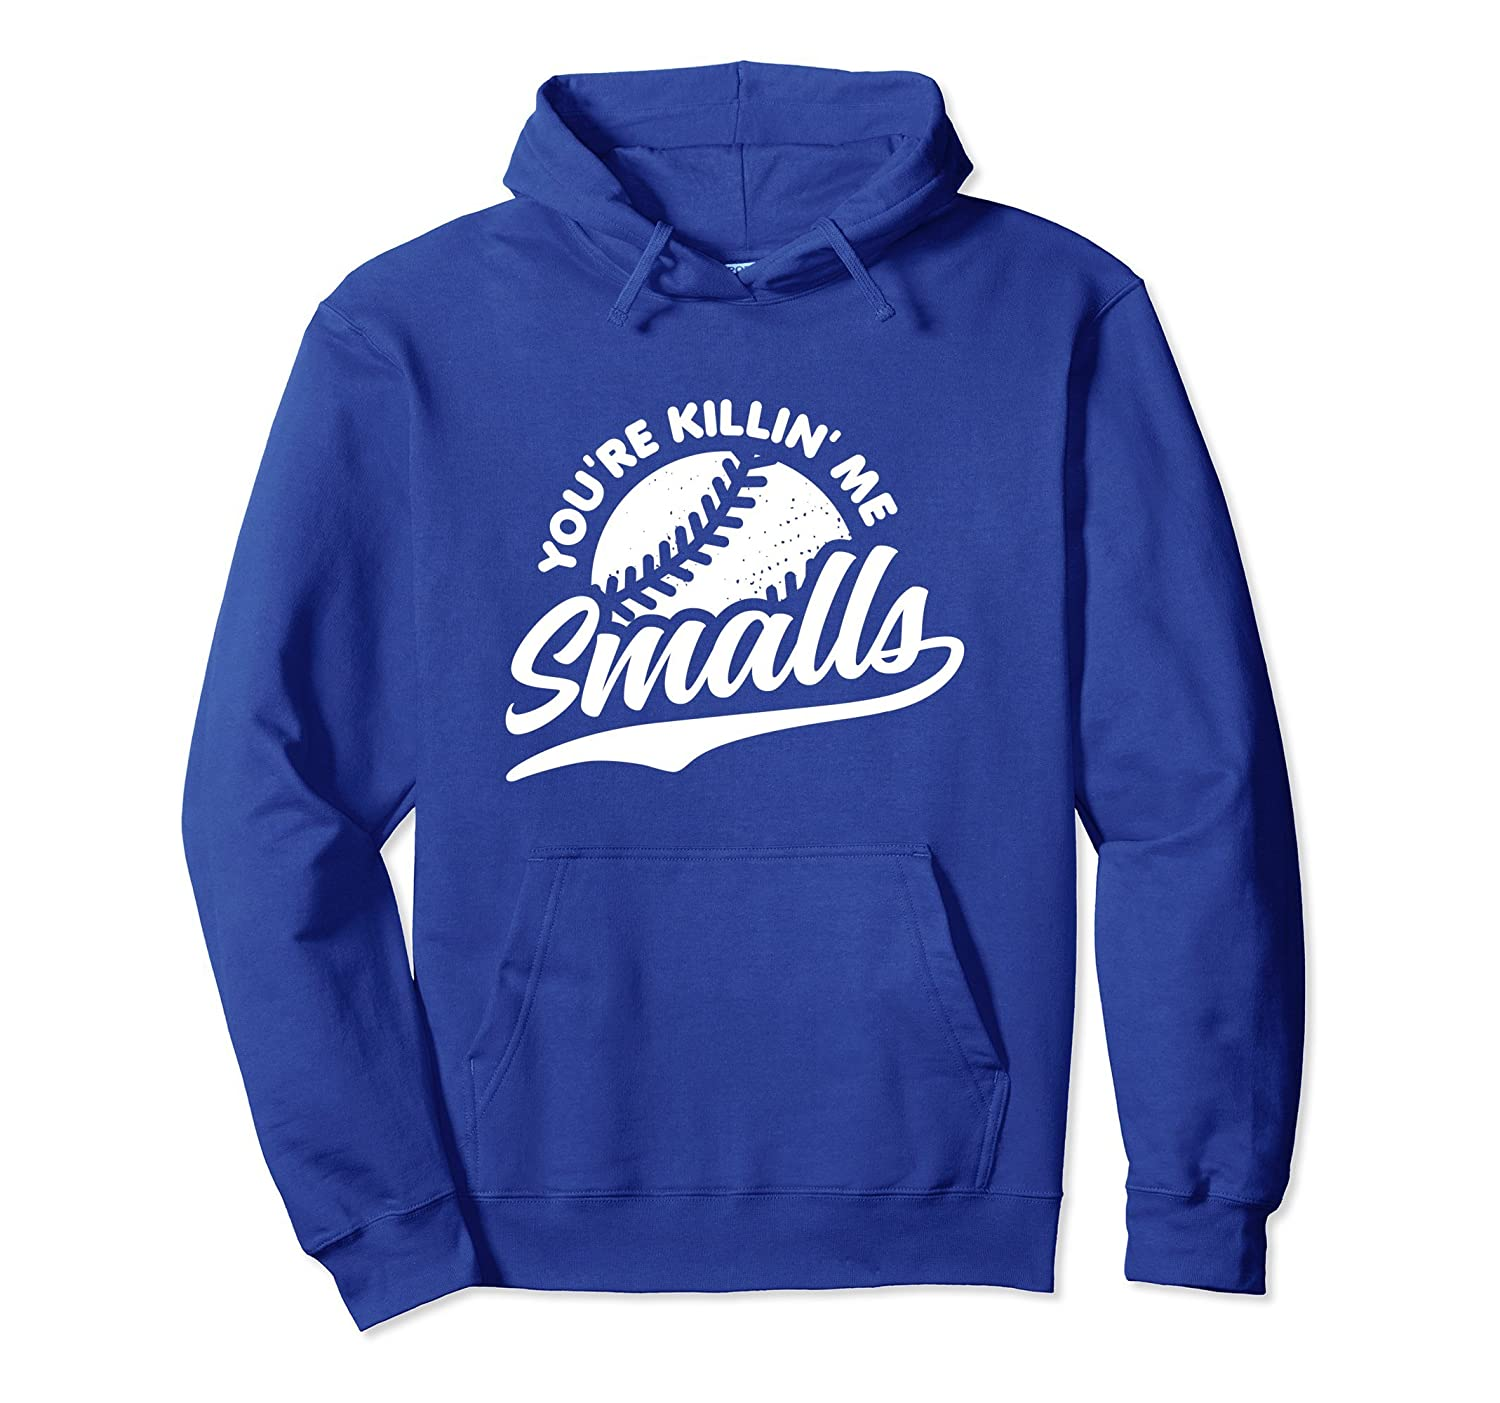 You're Killing Me Smalls Shirt Vintage Baseball Hoodie (Drk)-alottee gift